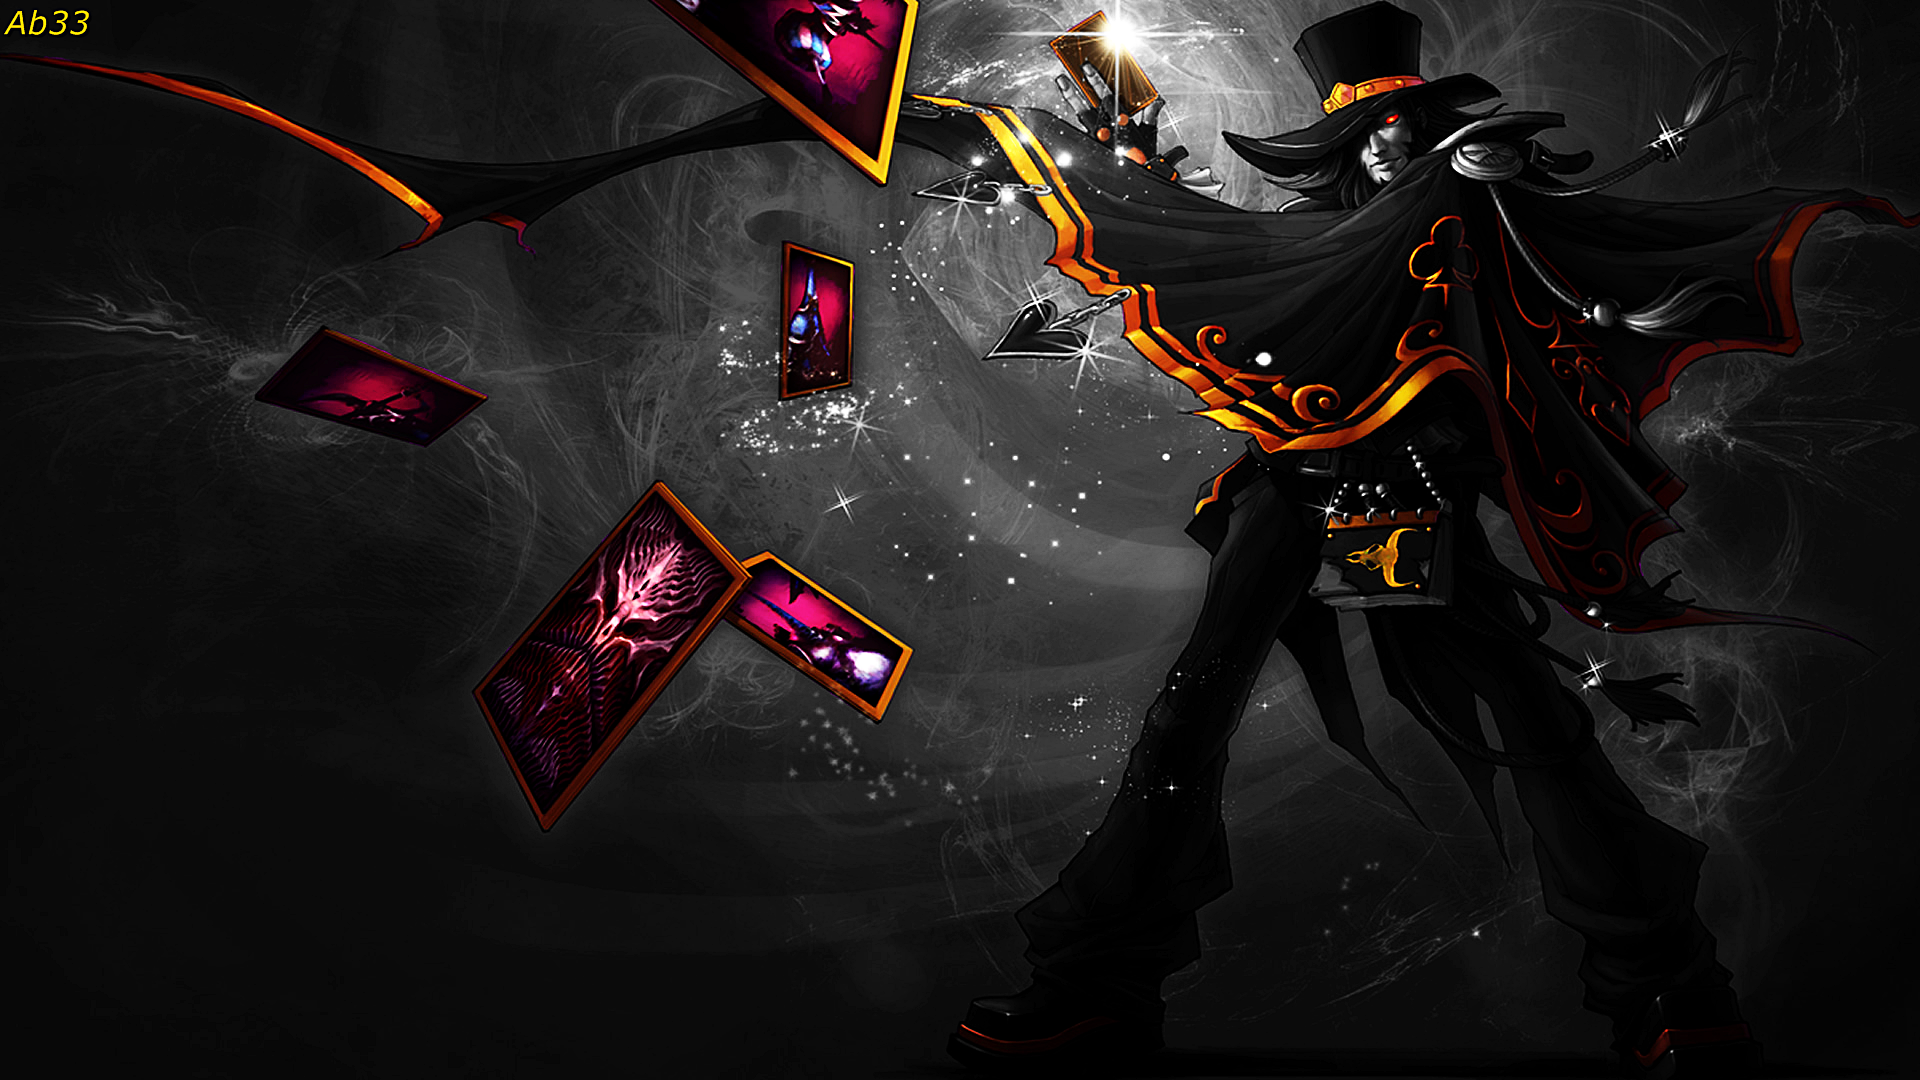 1920x1080 league of legends twisted fate magnificent black and 1920x1080 league of legends twisted fate magnificent black and white voltagebd Gallery